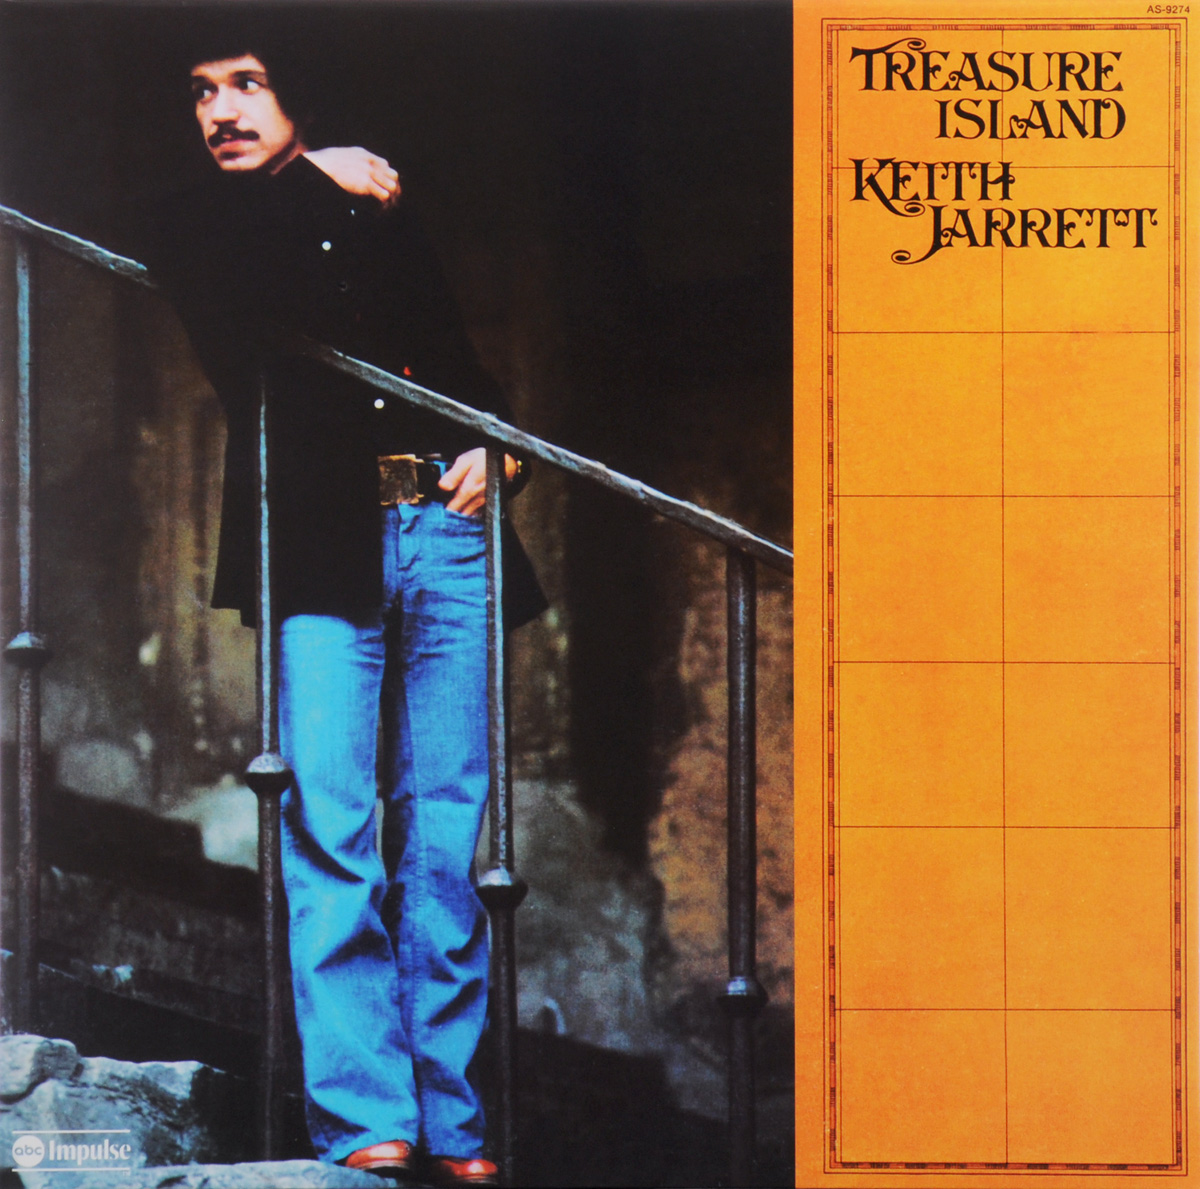 Кейт Джарретт Keith Jarrett. Treasure Island (LP) keith giffen threshold vol 1 the hunted the new 52